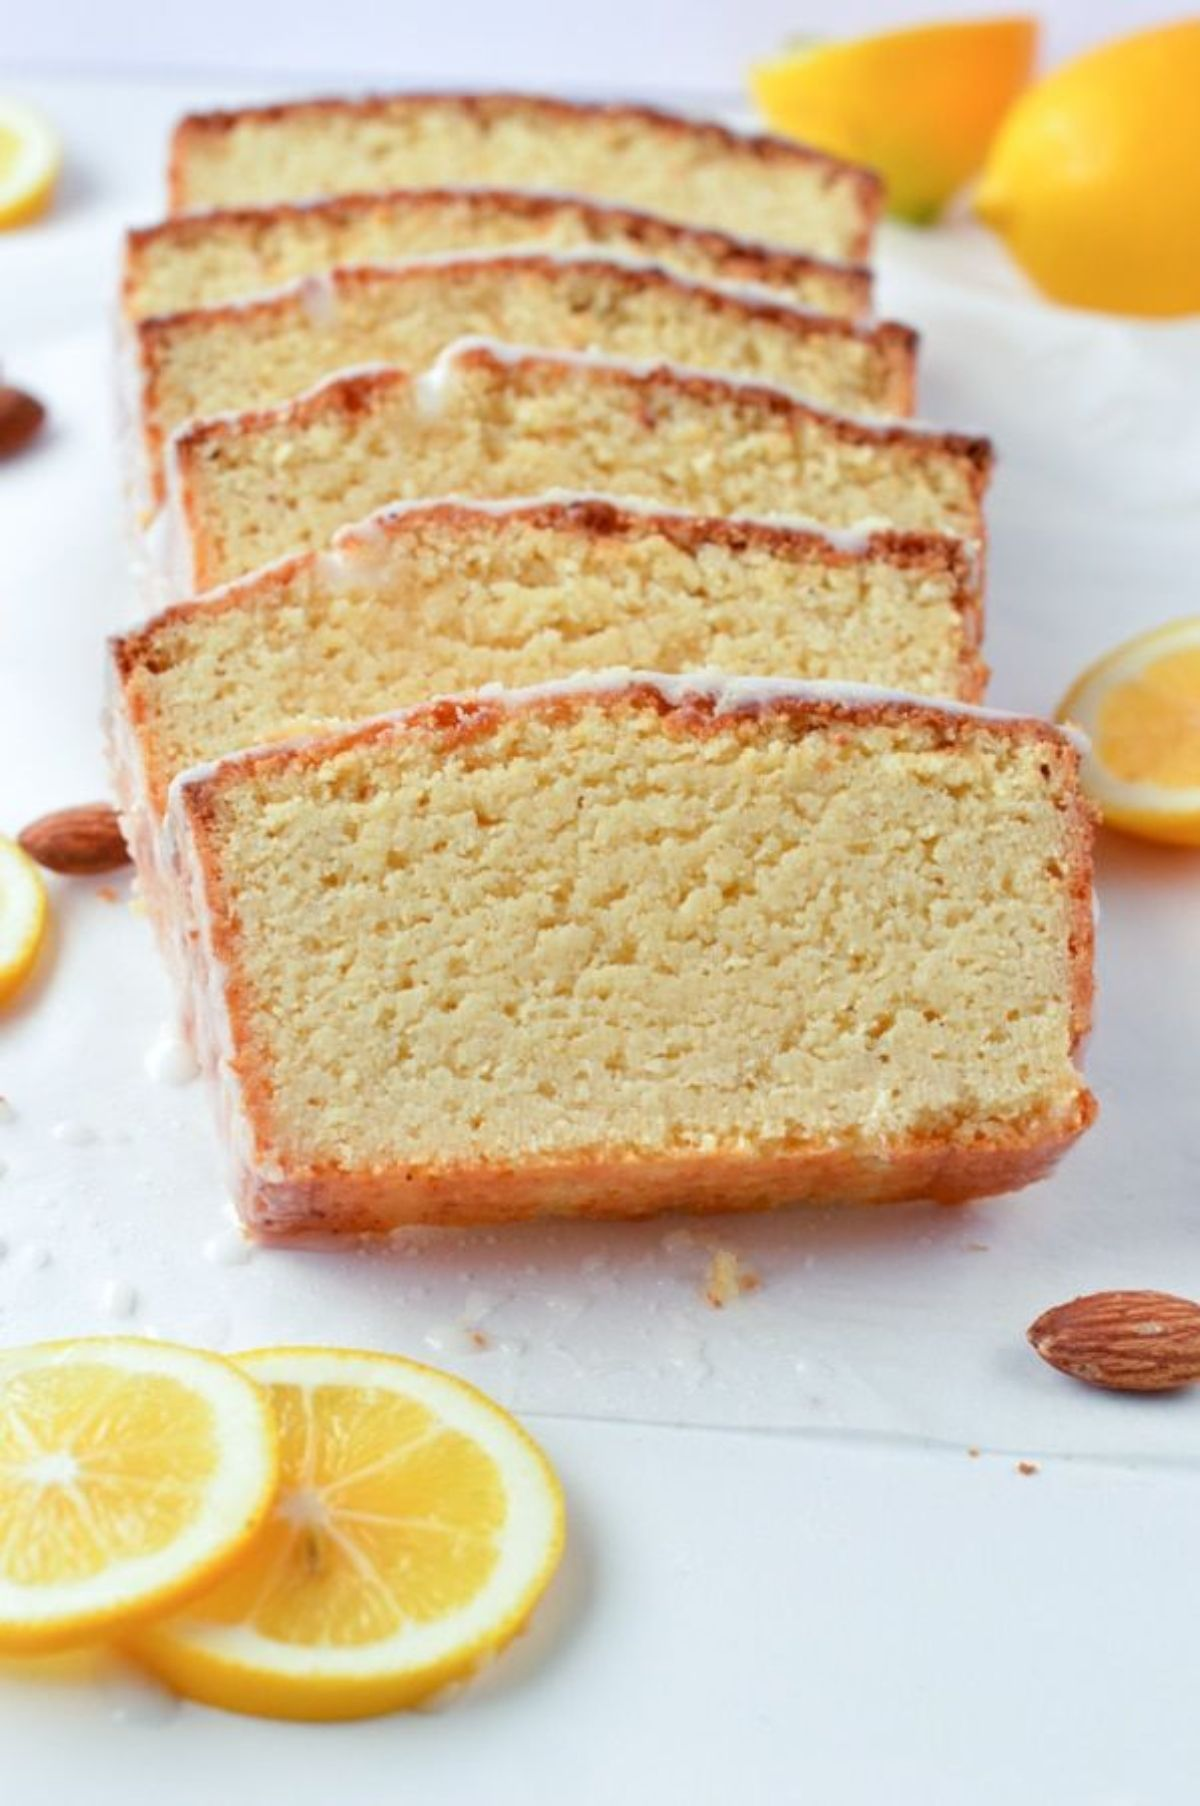 Slices of lemon cake with white icing. Lemon slices scattered around